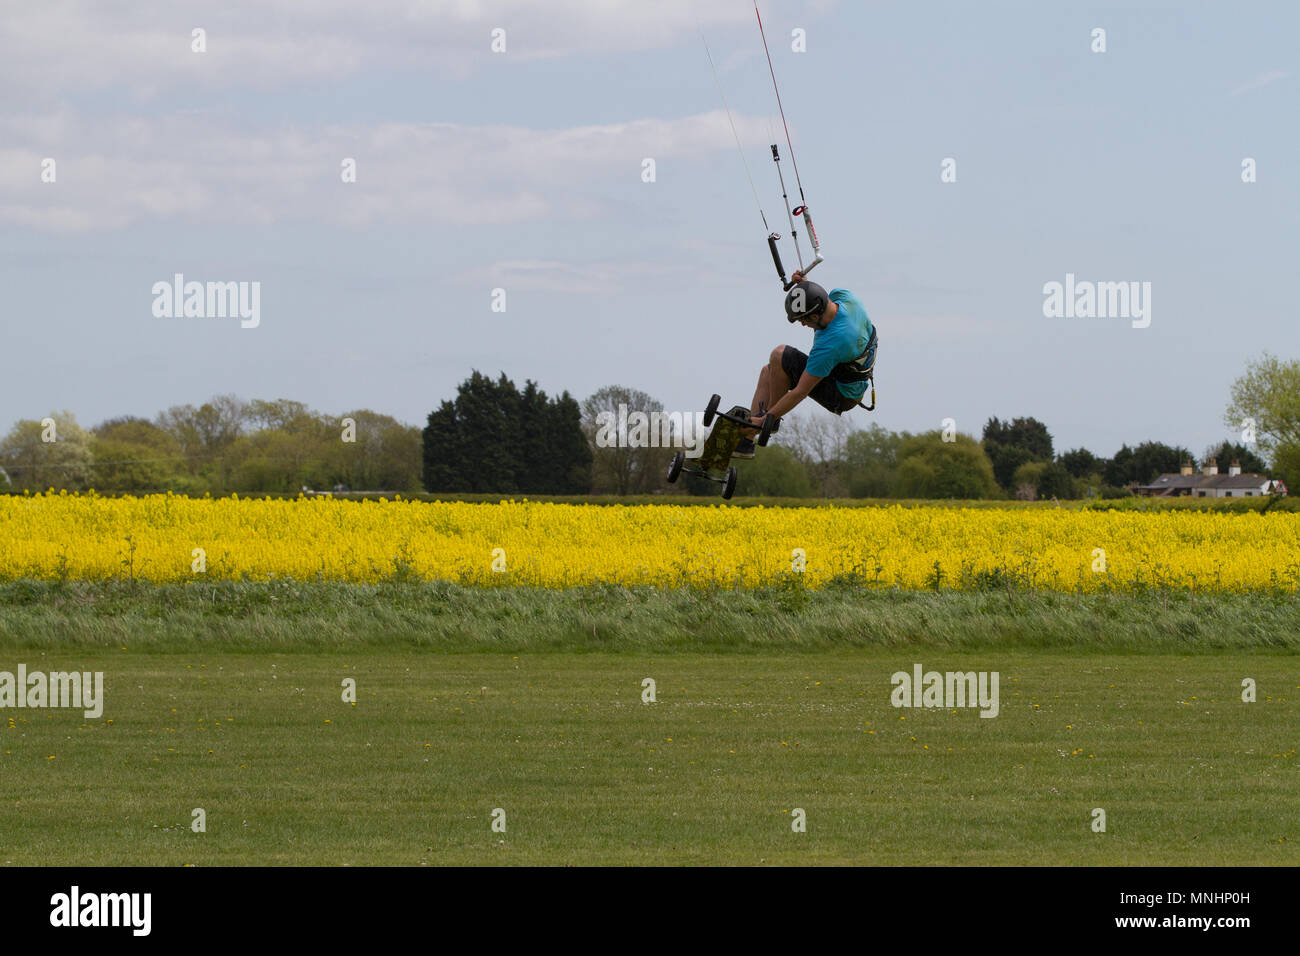 Extreme sport kite landboarding in Essex, UK. Airborne over a field. - Stock Image